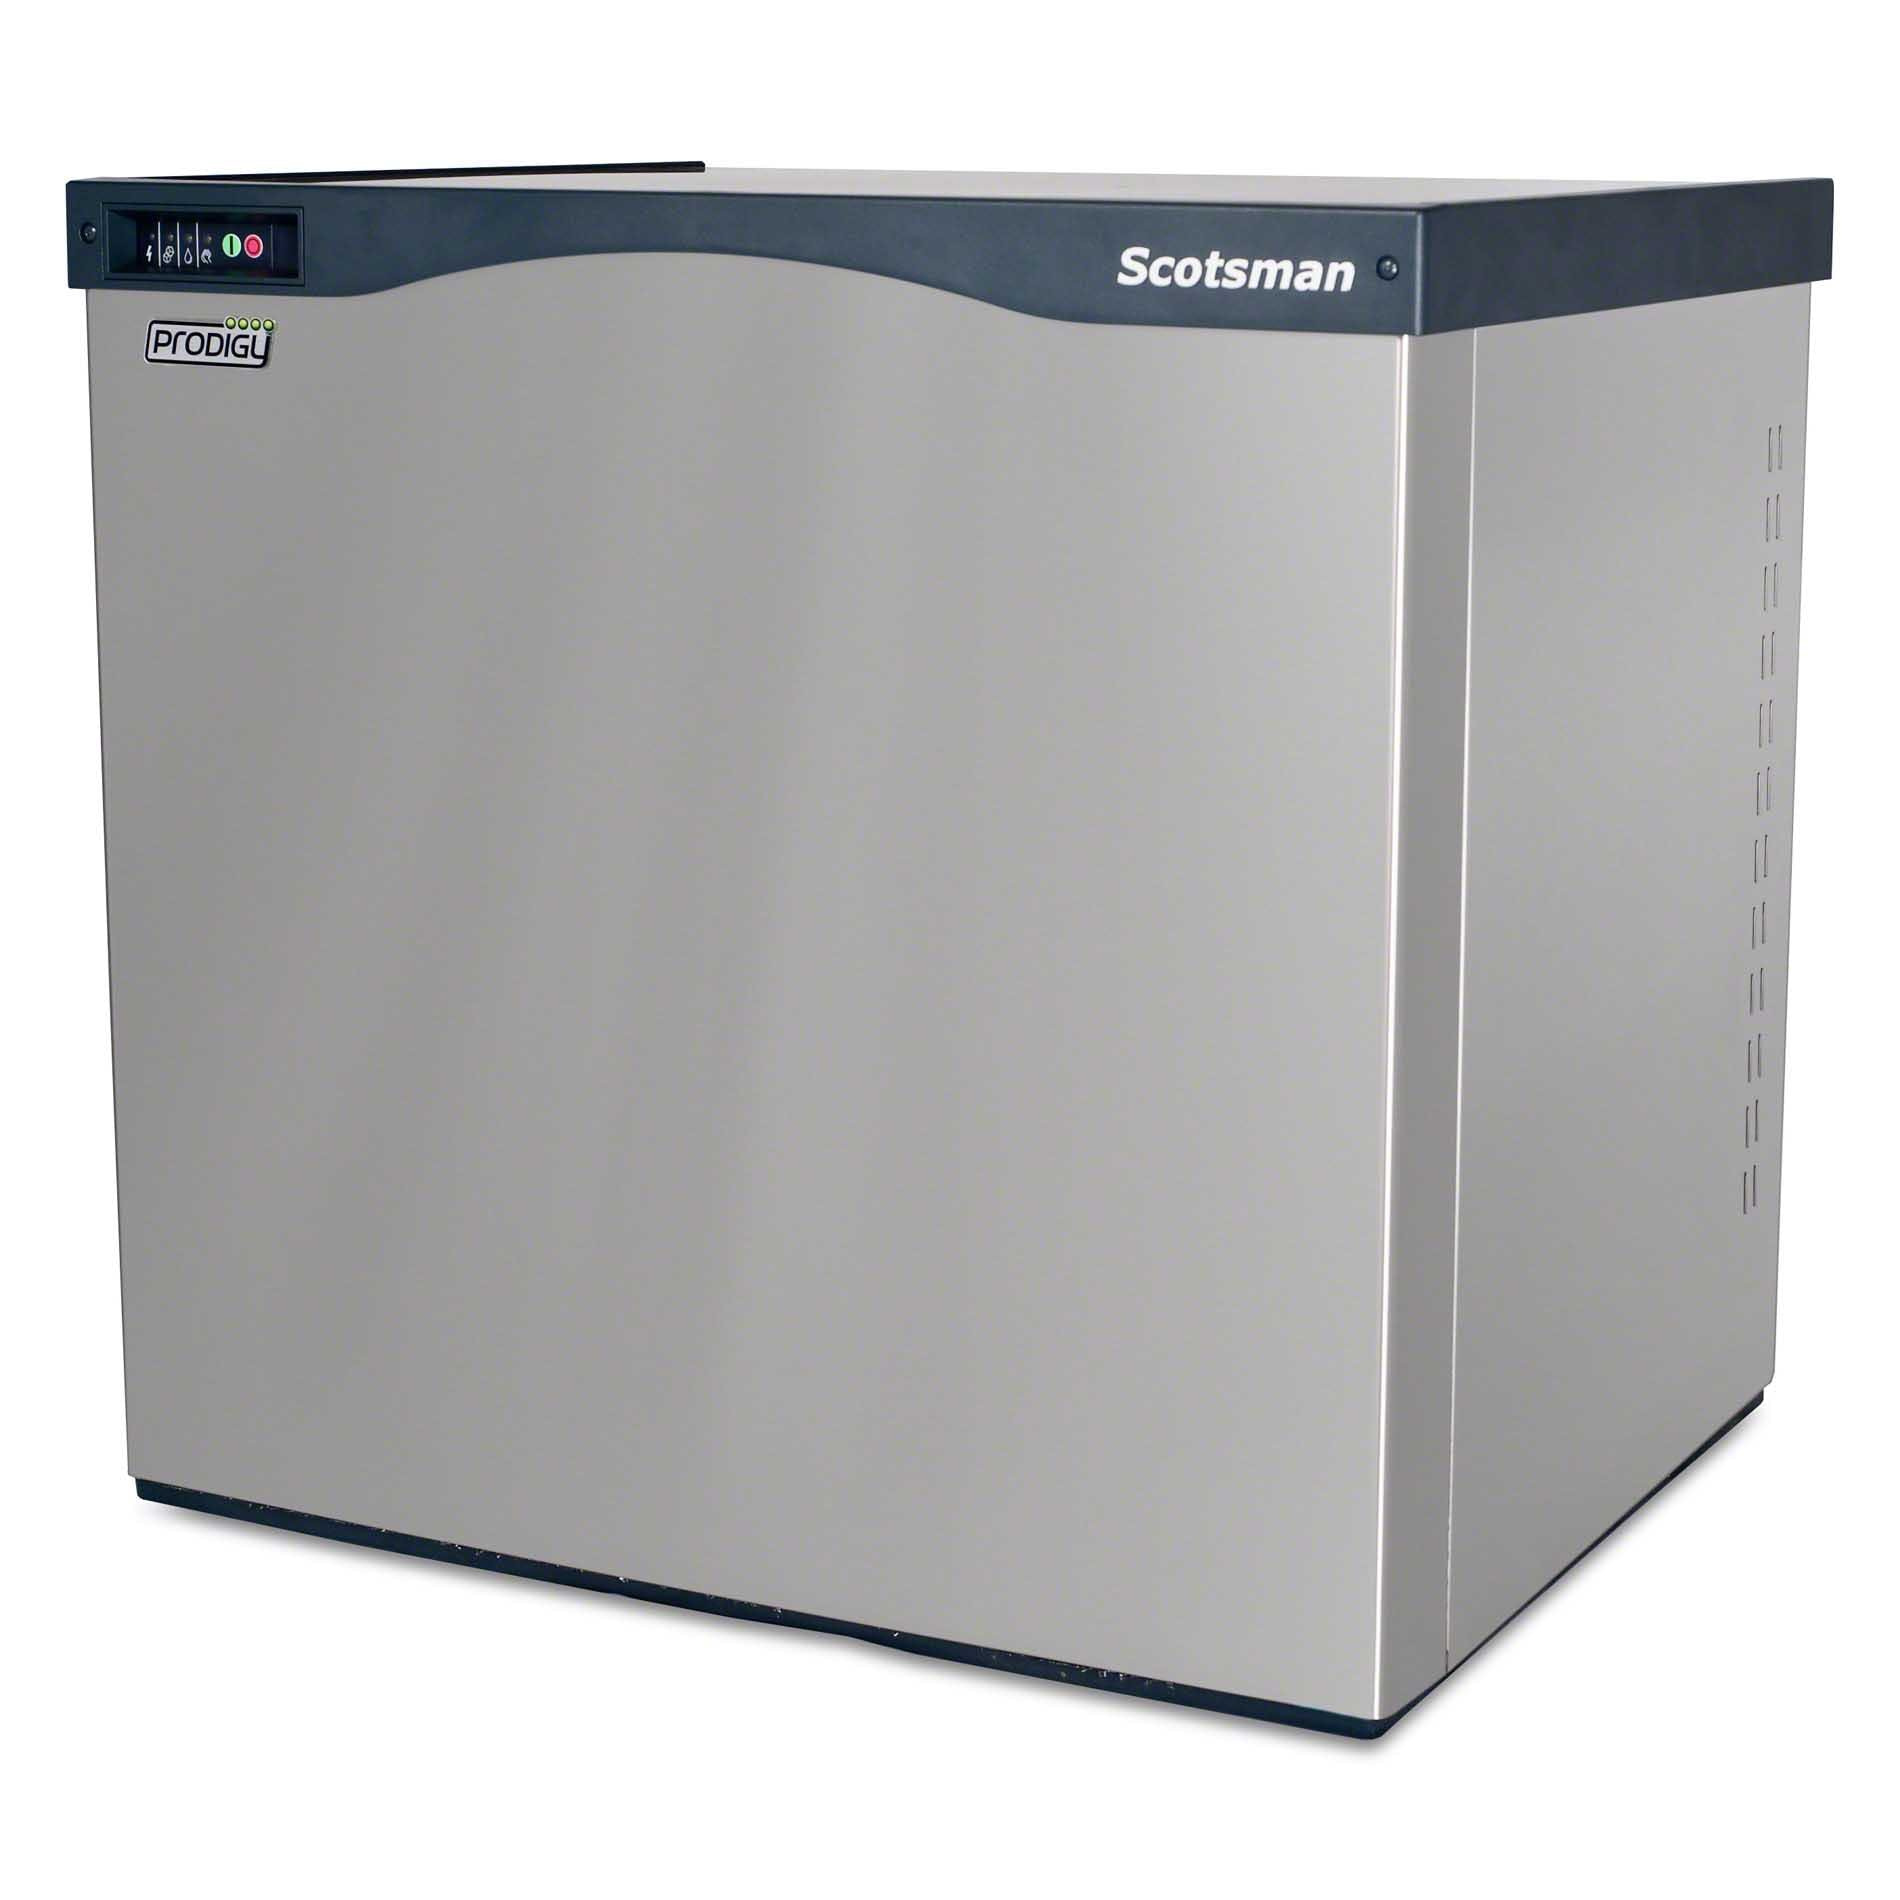 Scotsman - C1030MW-32A 1009 lb Full Size Cube Ice Machine - Prodigy Series - sold by Food Service Warehouse